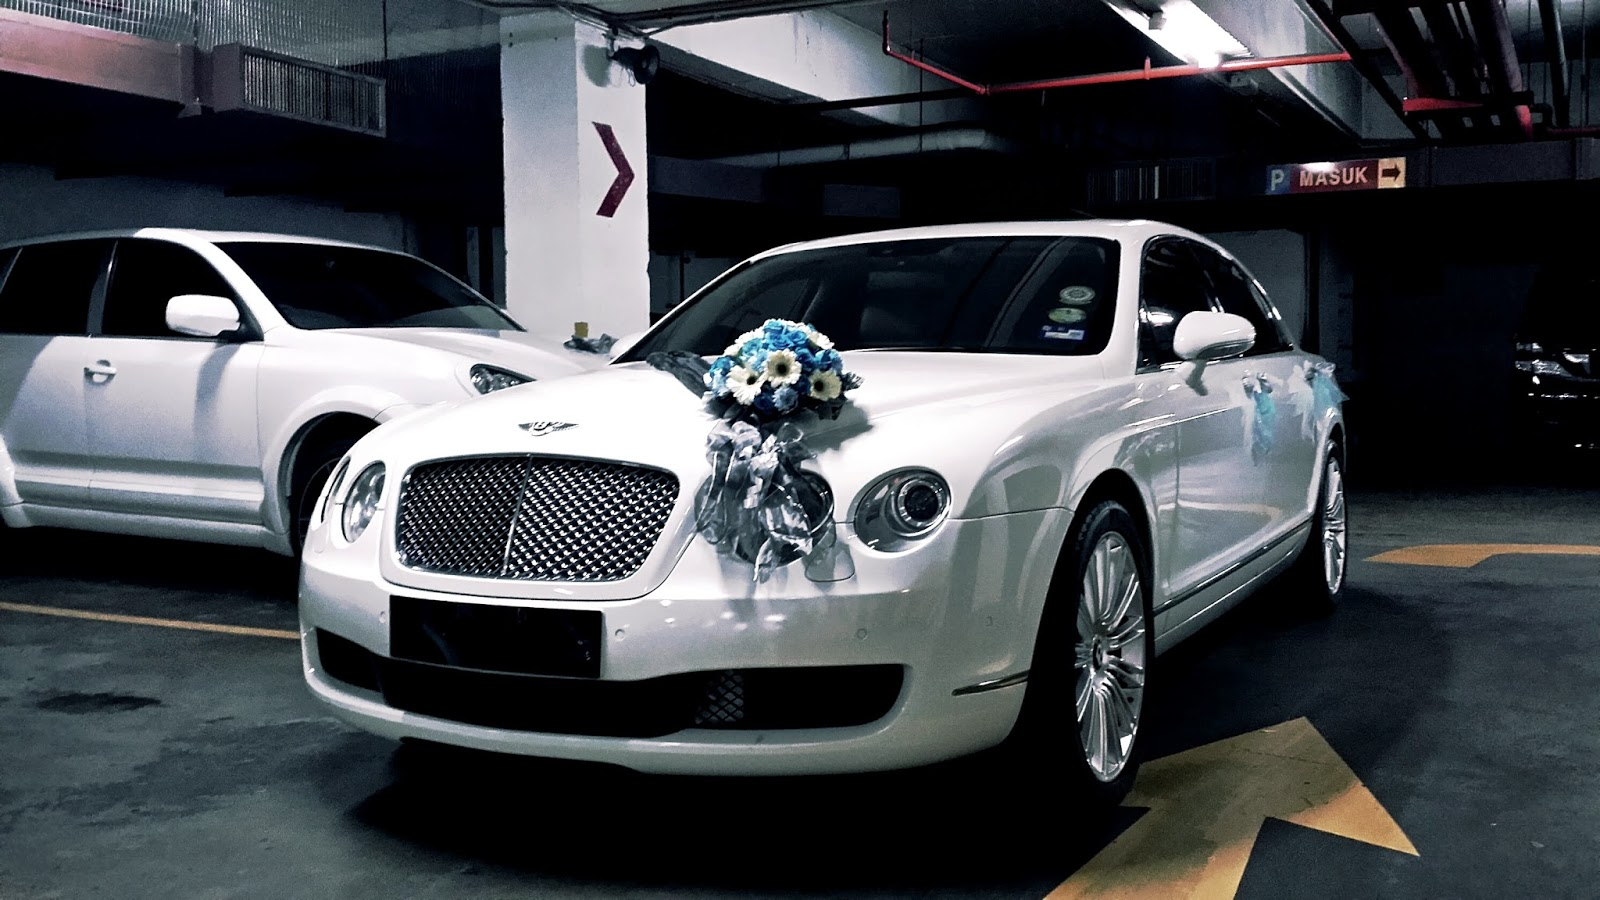 beach bentleyflying by exotic miami bentley miamibeach spur pin car rentals for flying in get rental south carrental cars